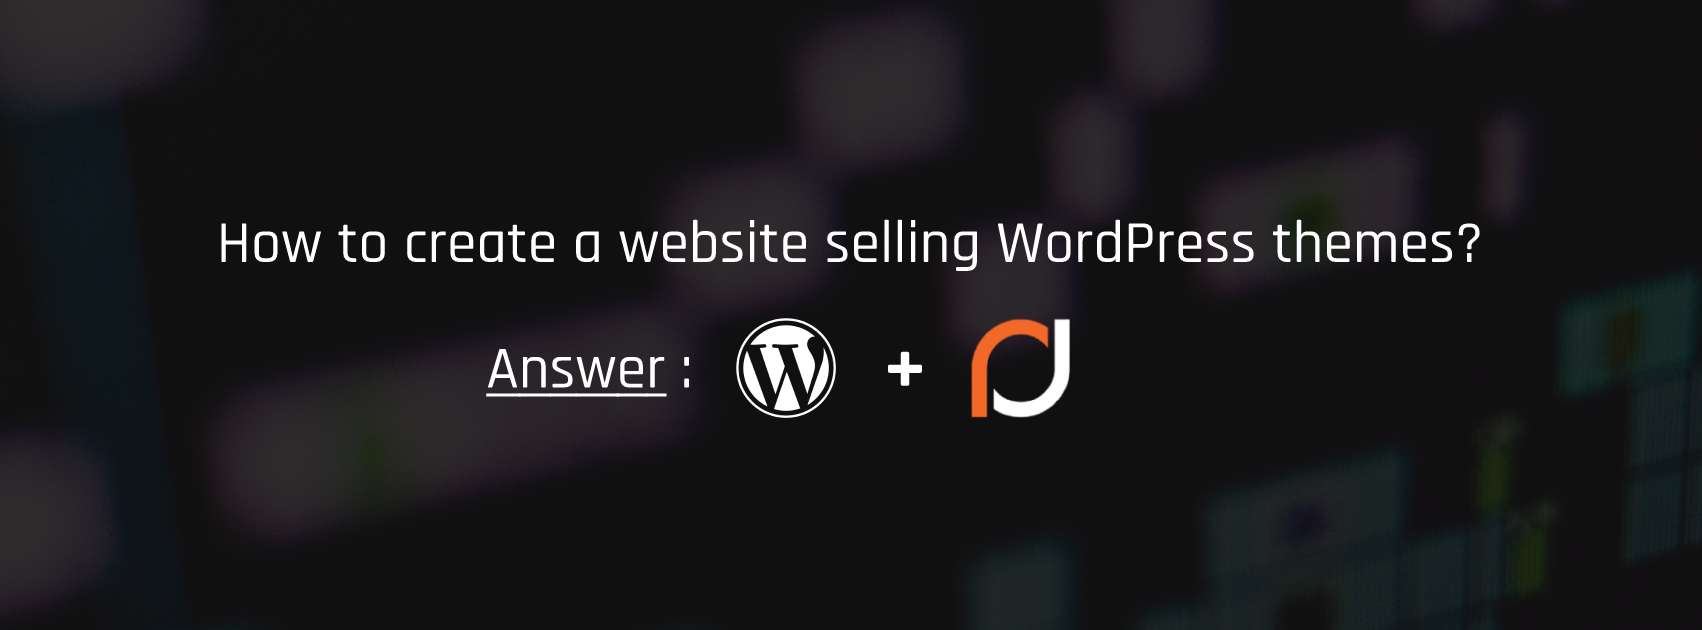 How to create a website selling WordPress themes